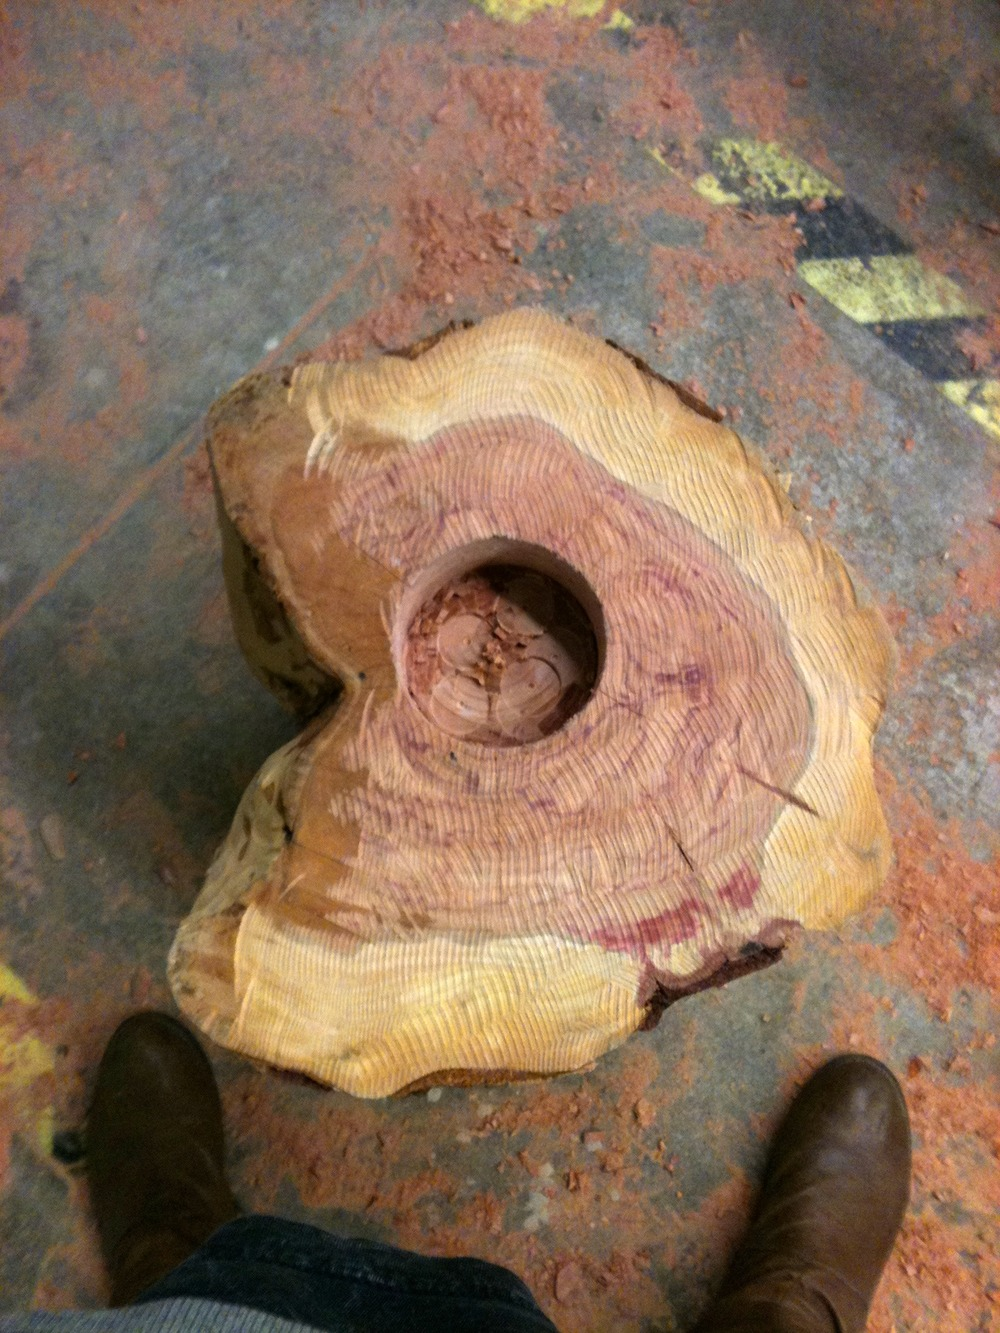 Base after initial bark removal, carving, and bore hole.